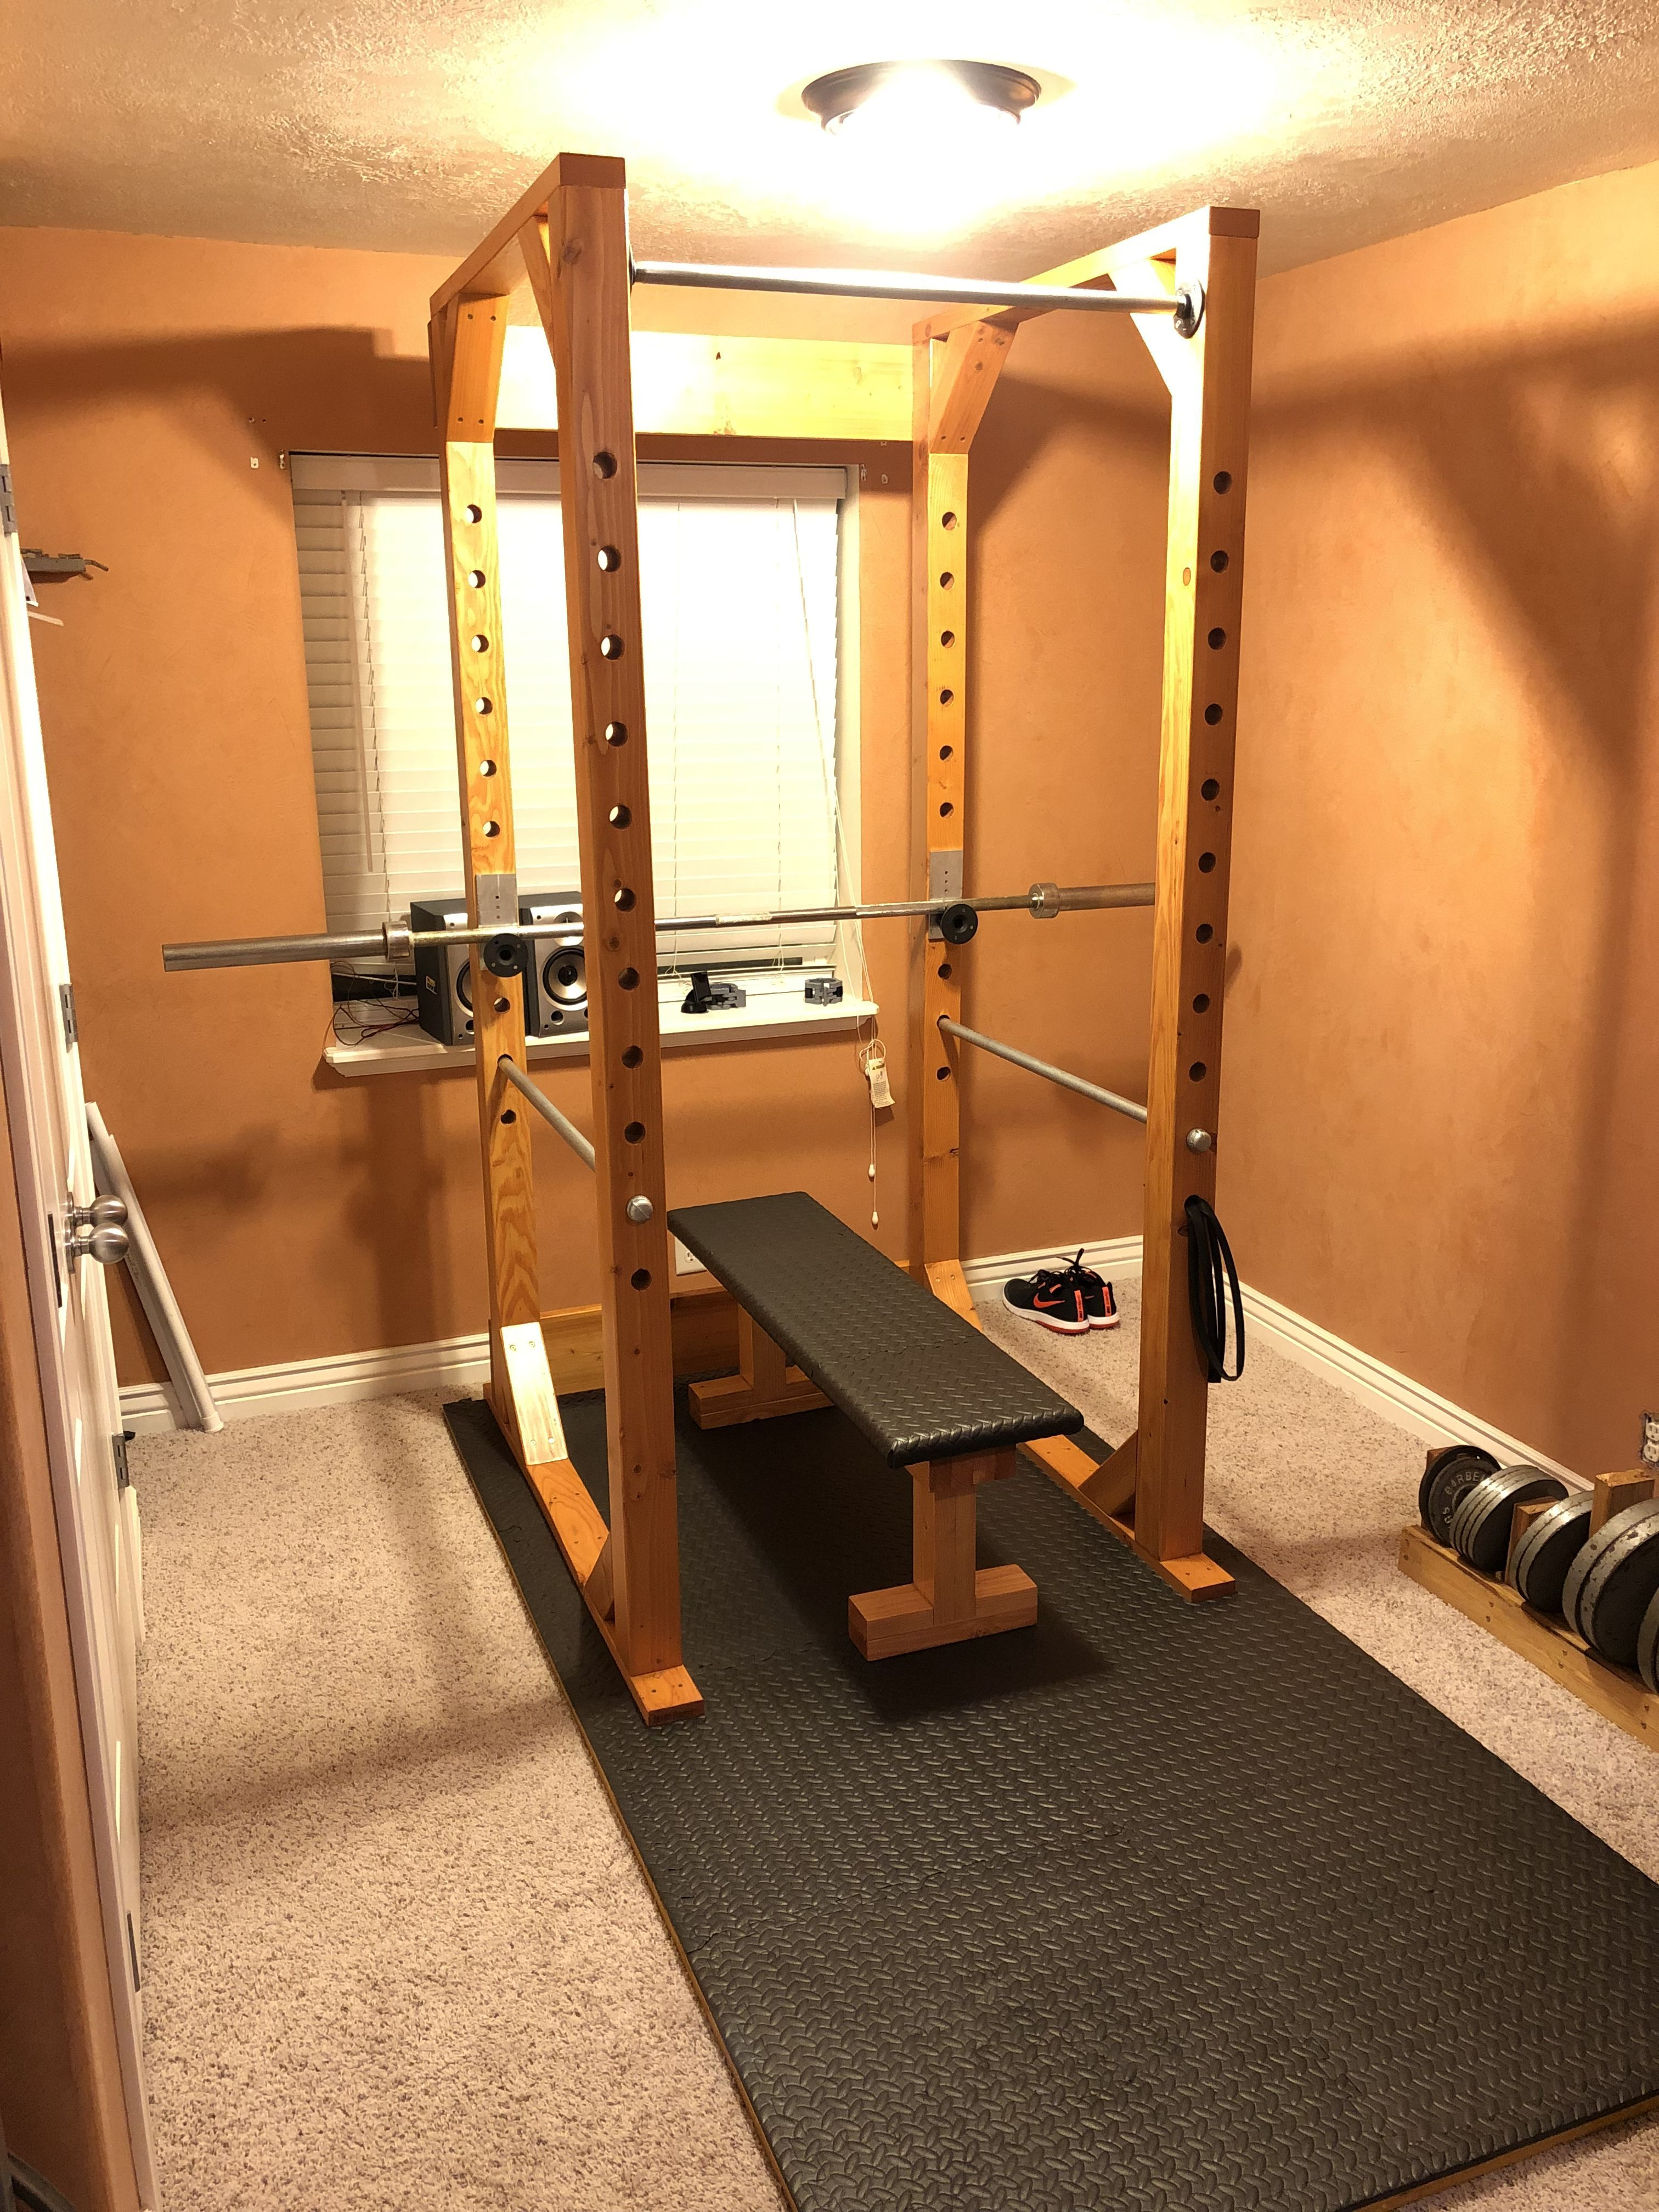 Homemade Diy Power Rack Homemade Diy Power Rack Masthe Top 5 Best Sports Bags For Women Diy Home Boxing Gym Pun In 2020 Diy Home Gym Gym Room At Home Home Gym Bench